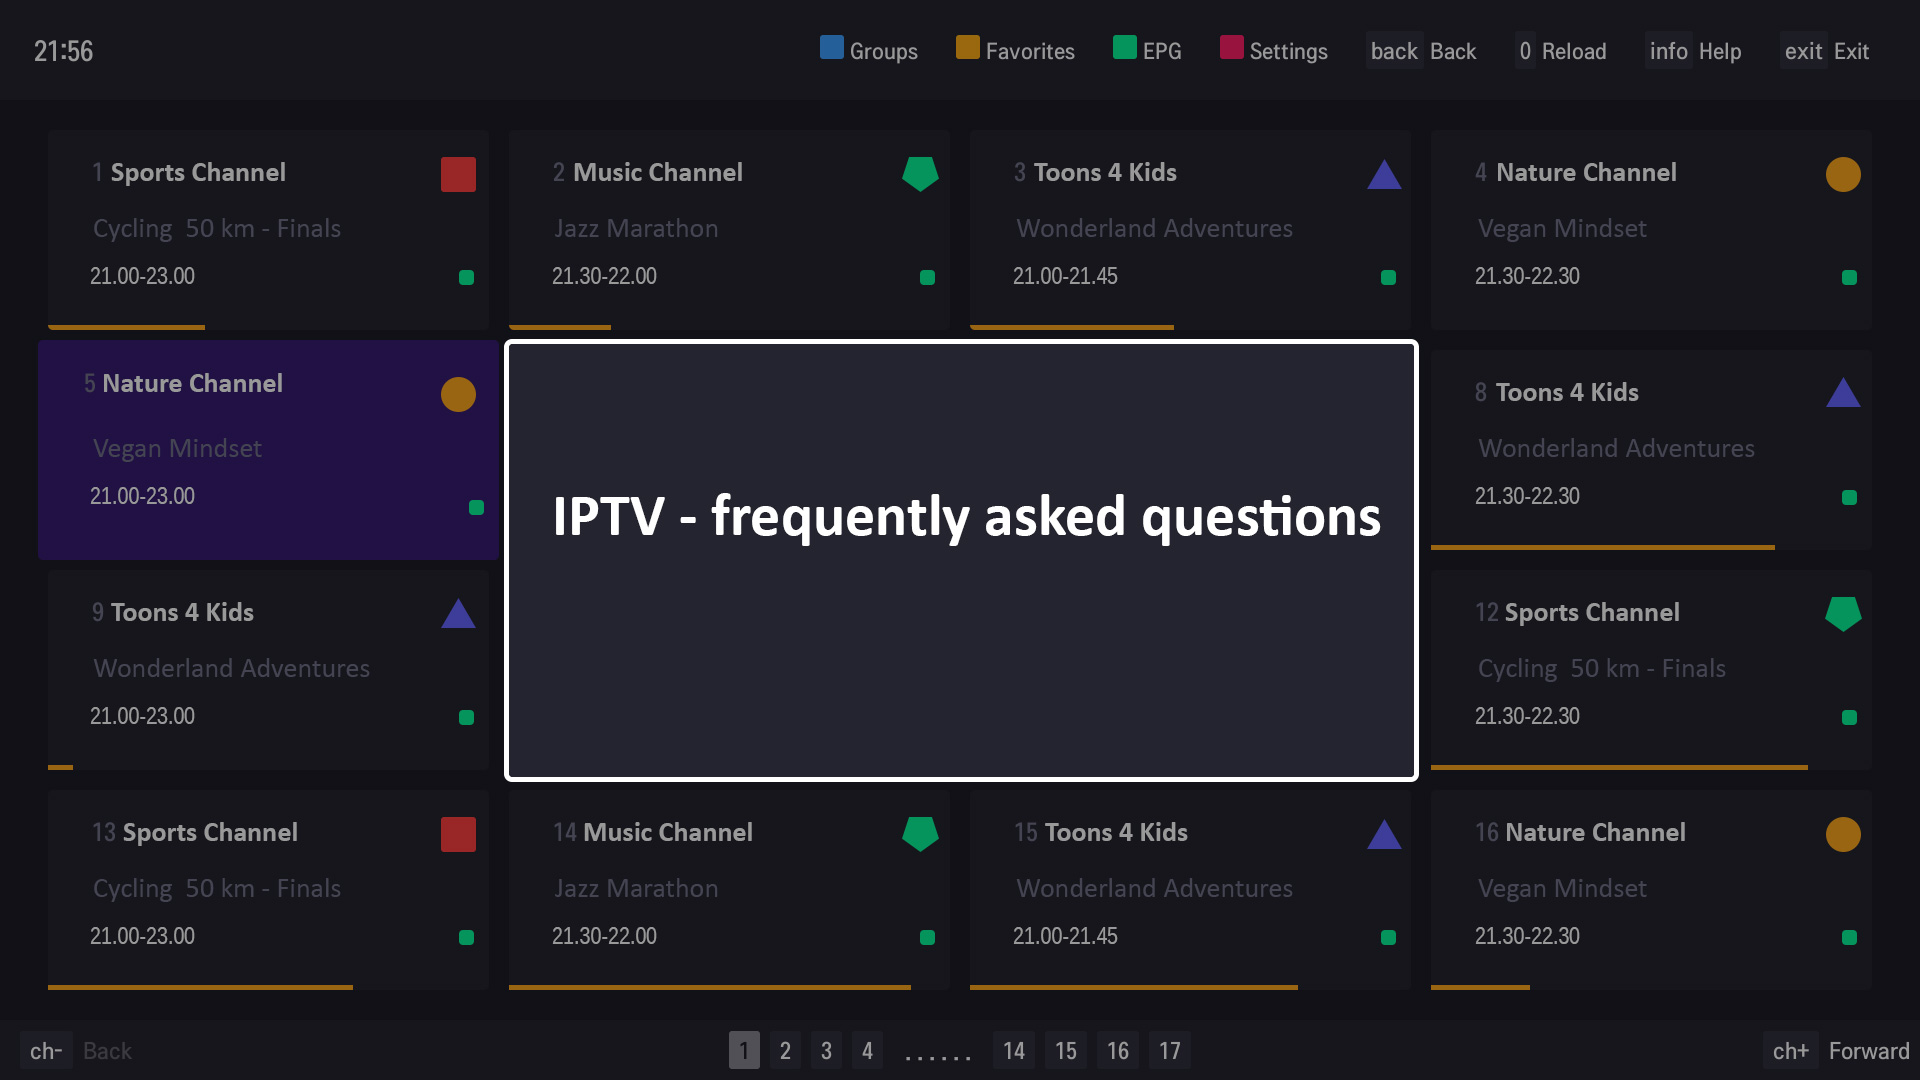 IPTV - frequently asked questions